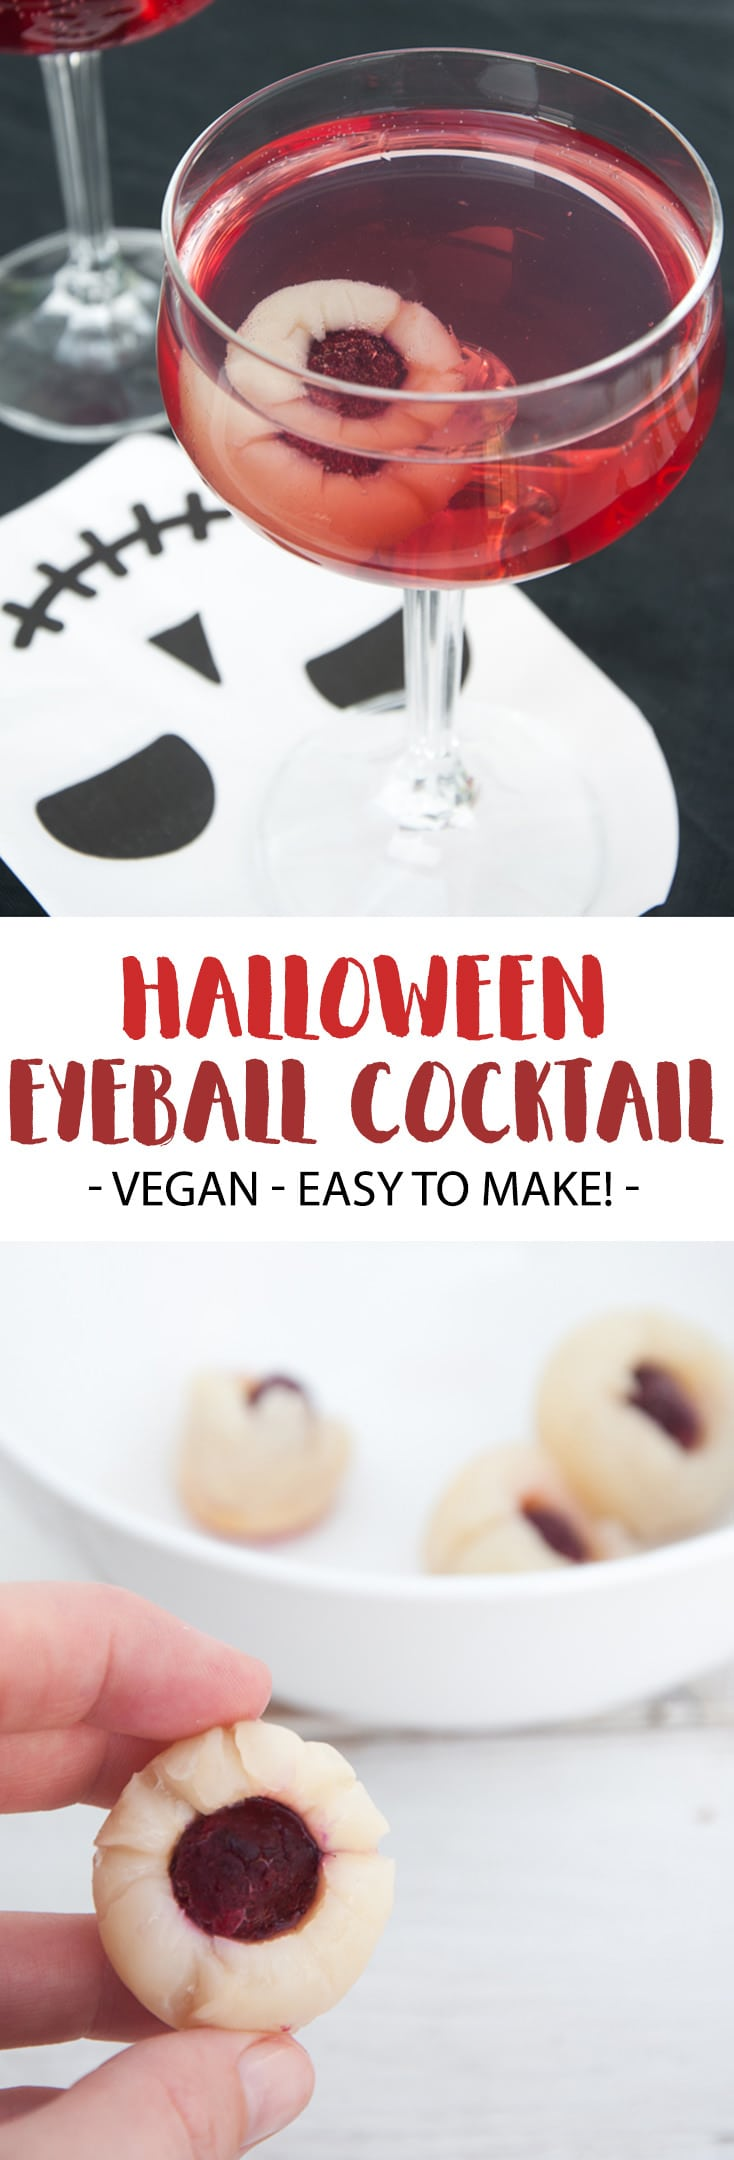 This Spooky Halloween Eyeball Cocktail is the perfect crowd-pleasing drink for your Halloween party! The base is a simple Gin Tonic with red grape juice. The eyeball add-in is super easy to make with only 2 ingredients. | ElephantasticVegan.com #halloween #vegan #cocktail